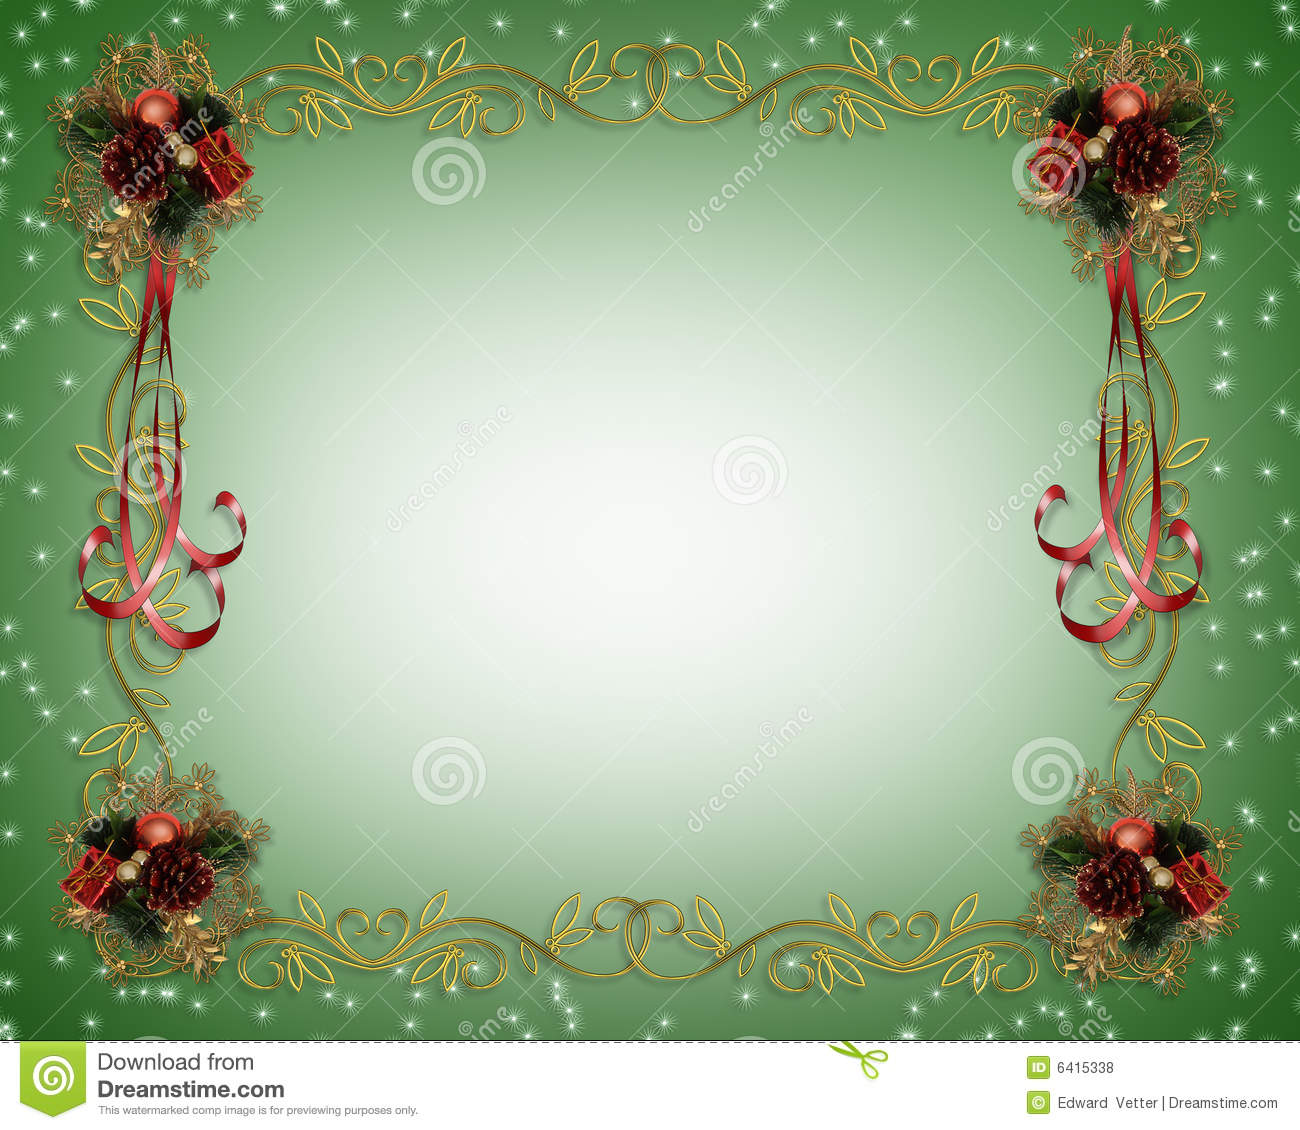 Christmas Frame Fancy Border Royalty Free Stock Photos - Image ...